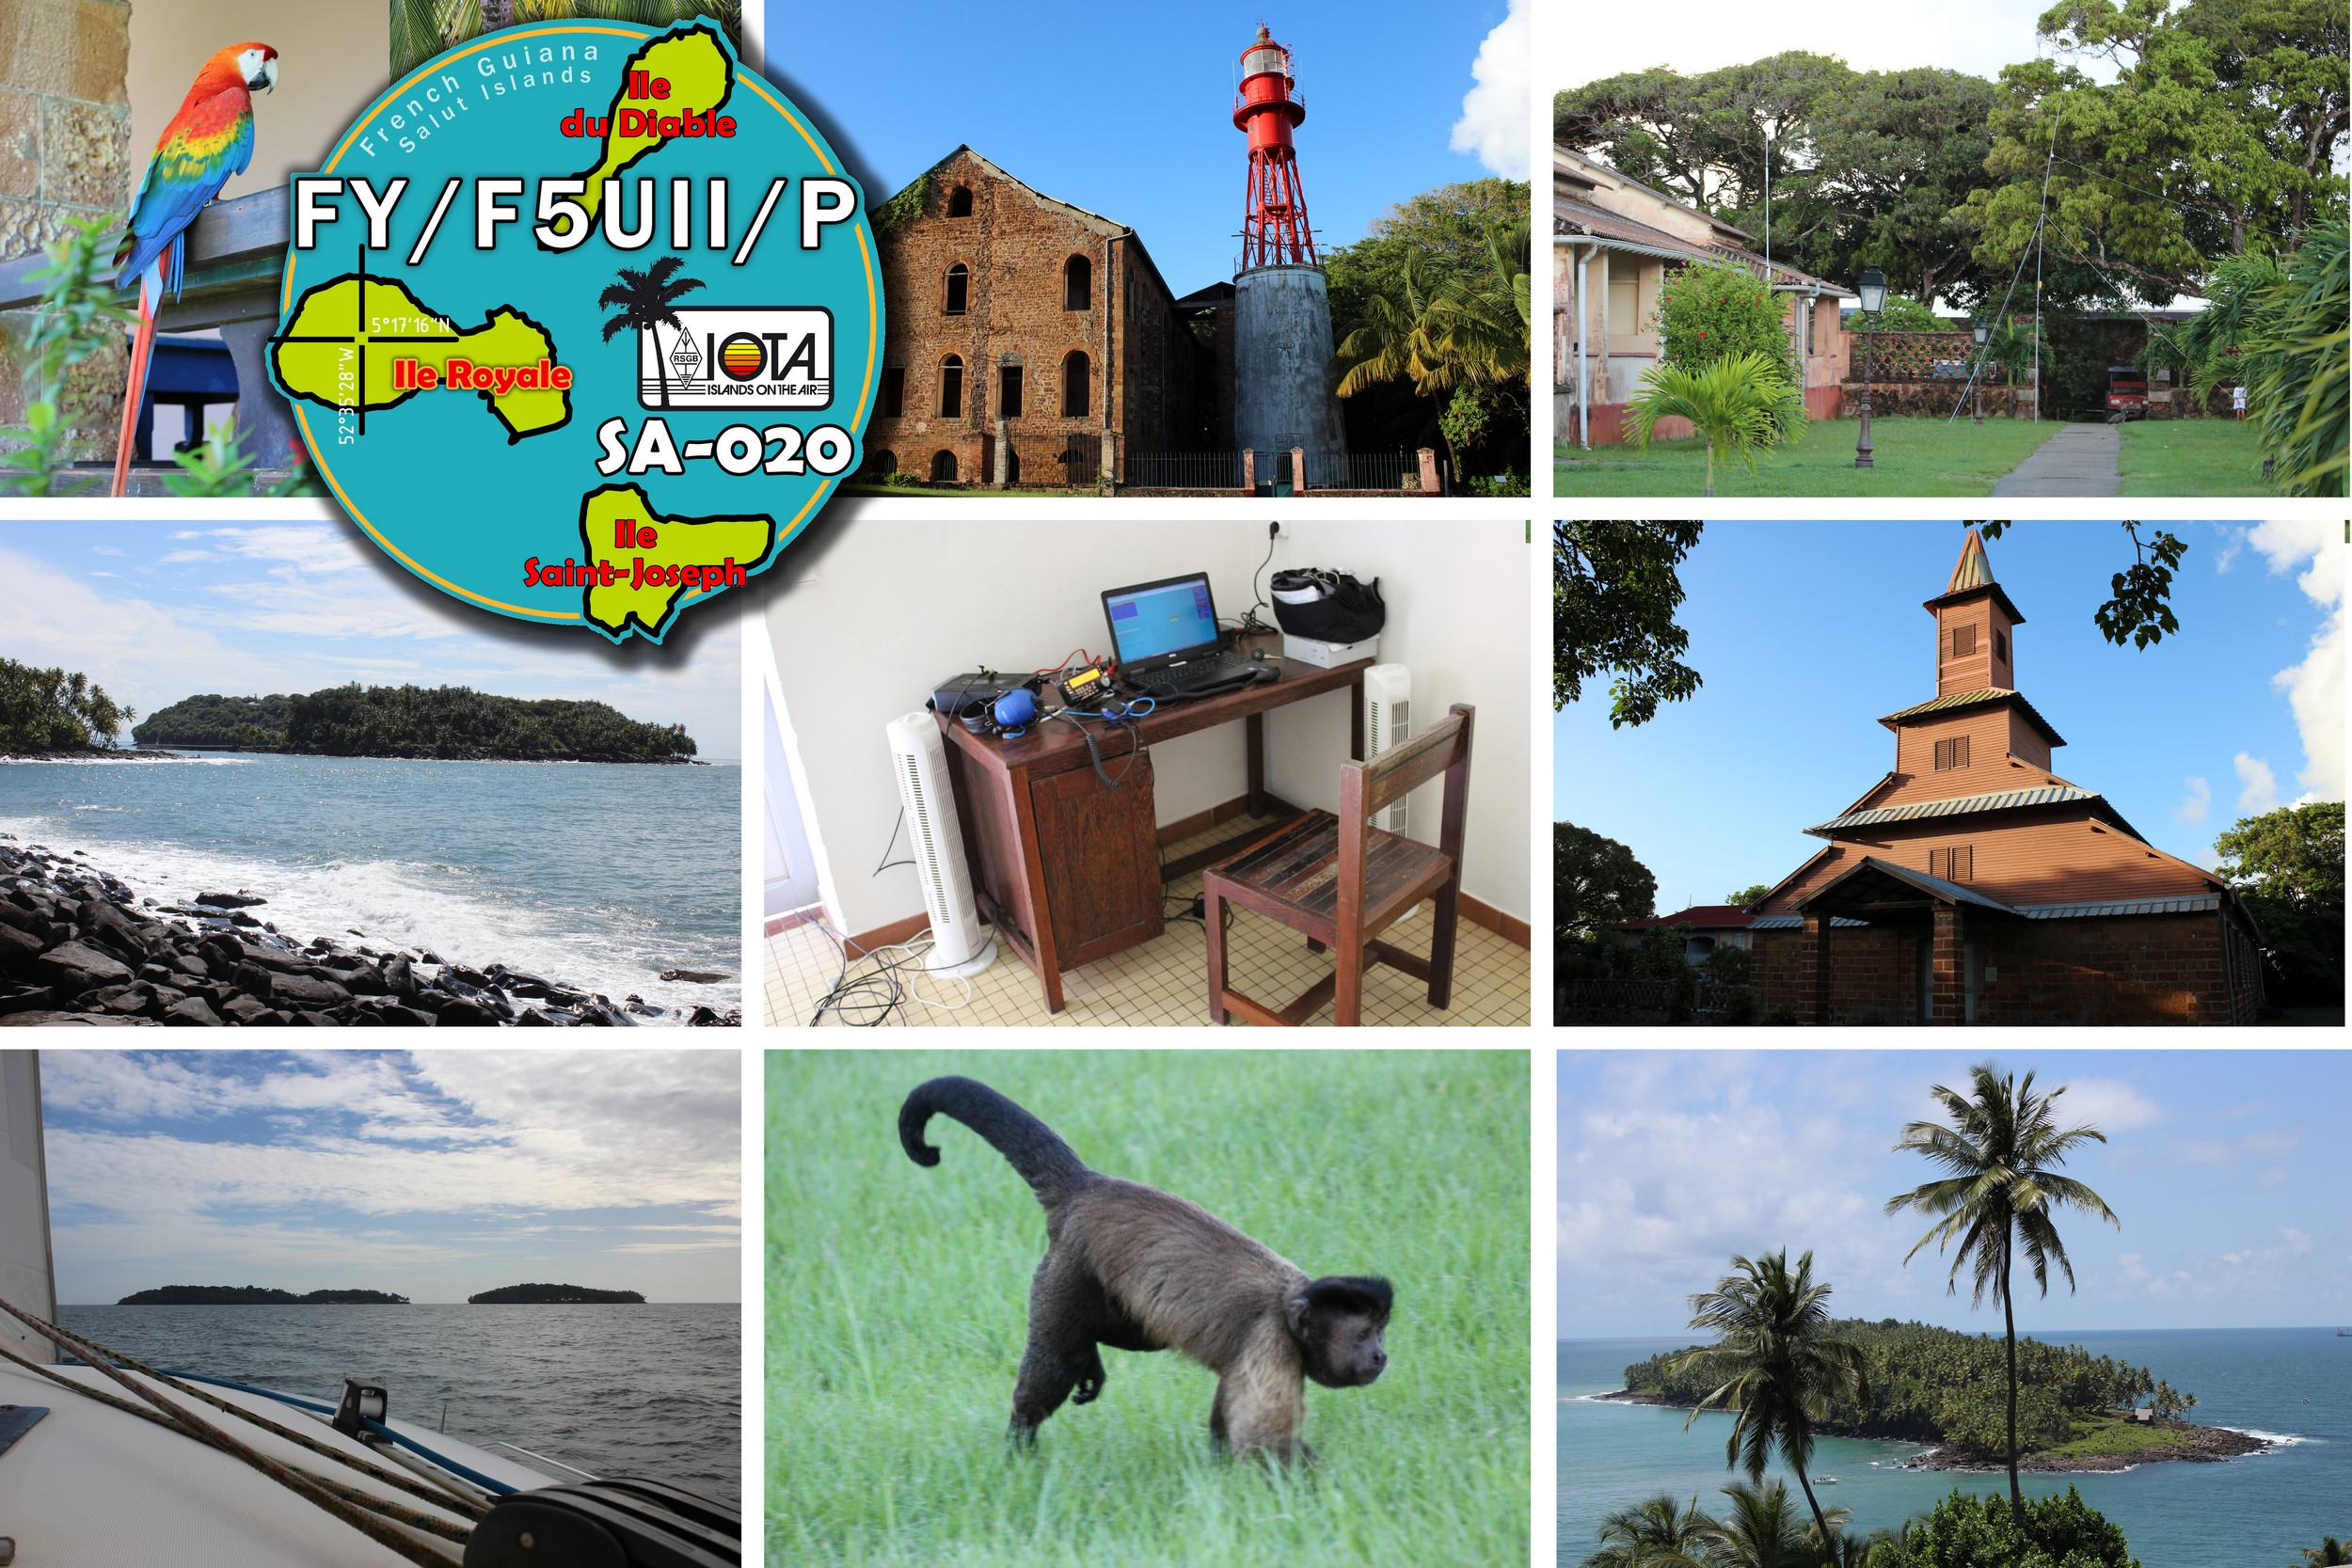 My participation to the IOTA contest from Royale island (SA-020), Salut Islands in Guiana